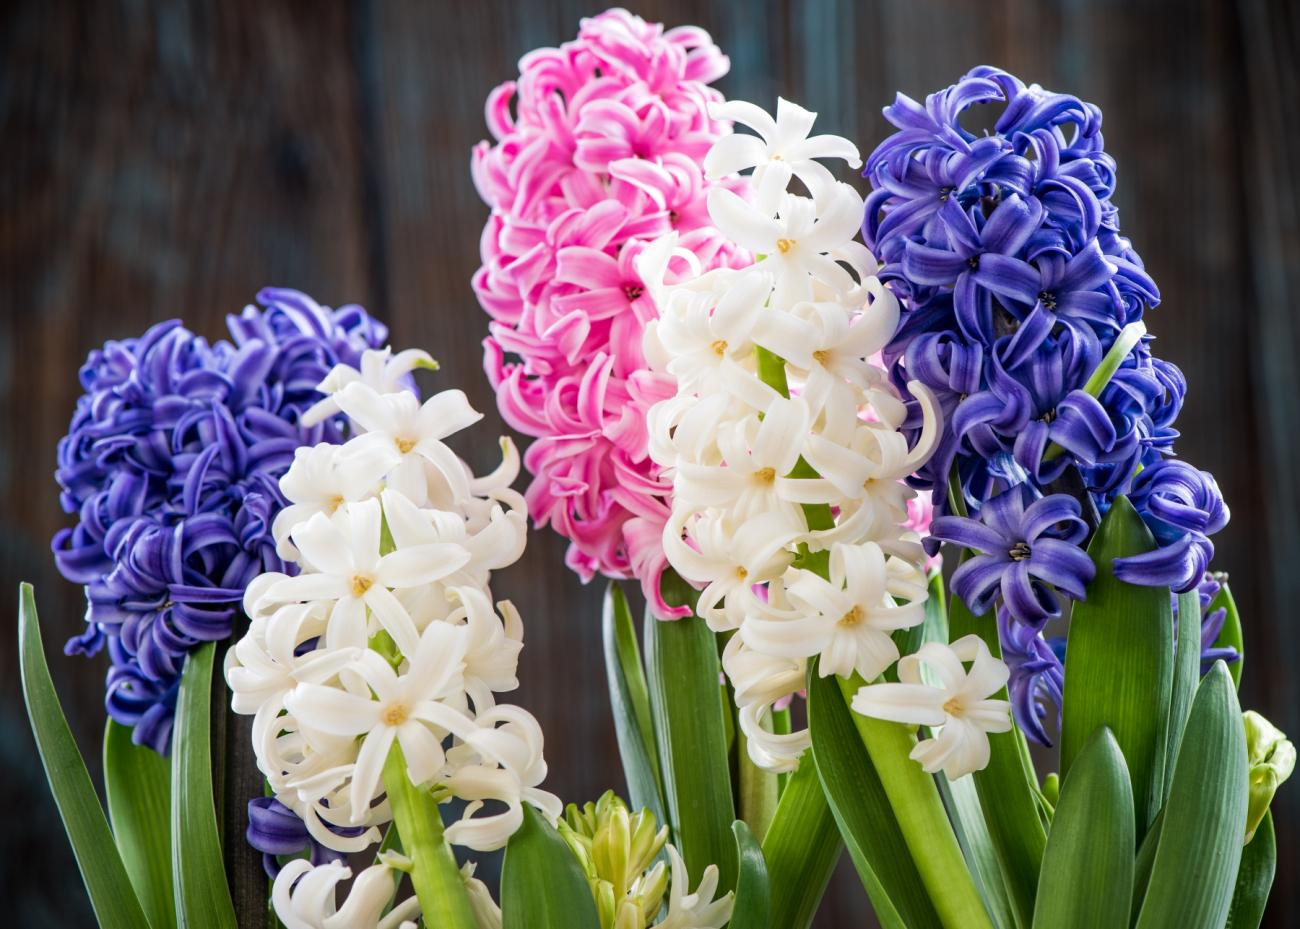 Hyacinth and muscari planting and caring for hyacinth bulbs the hyacinths mightylinksfo